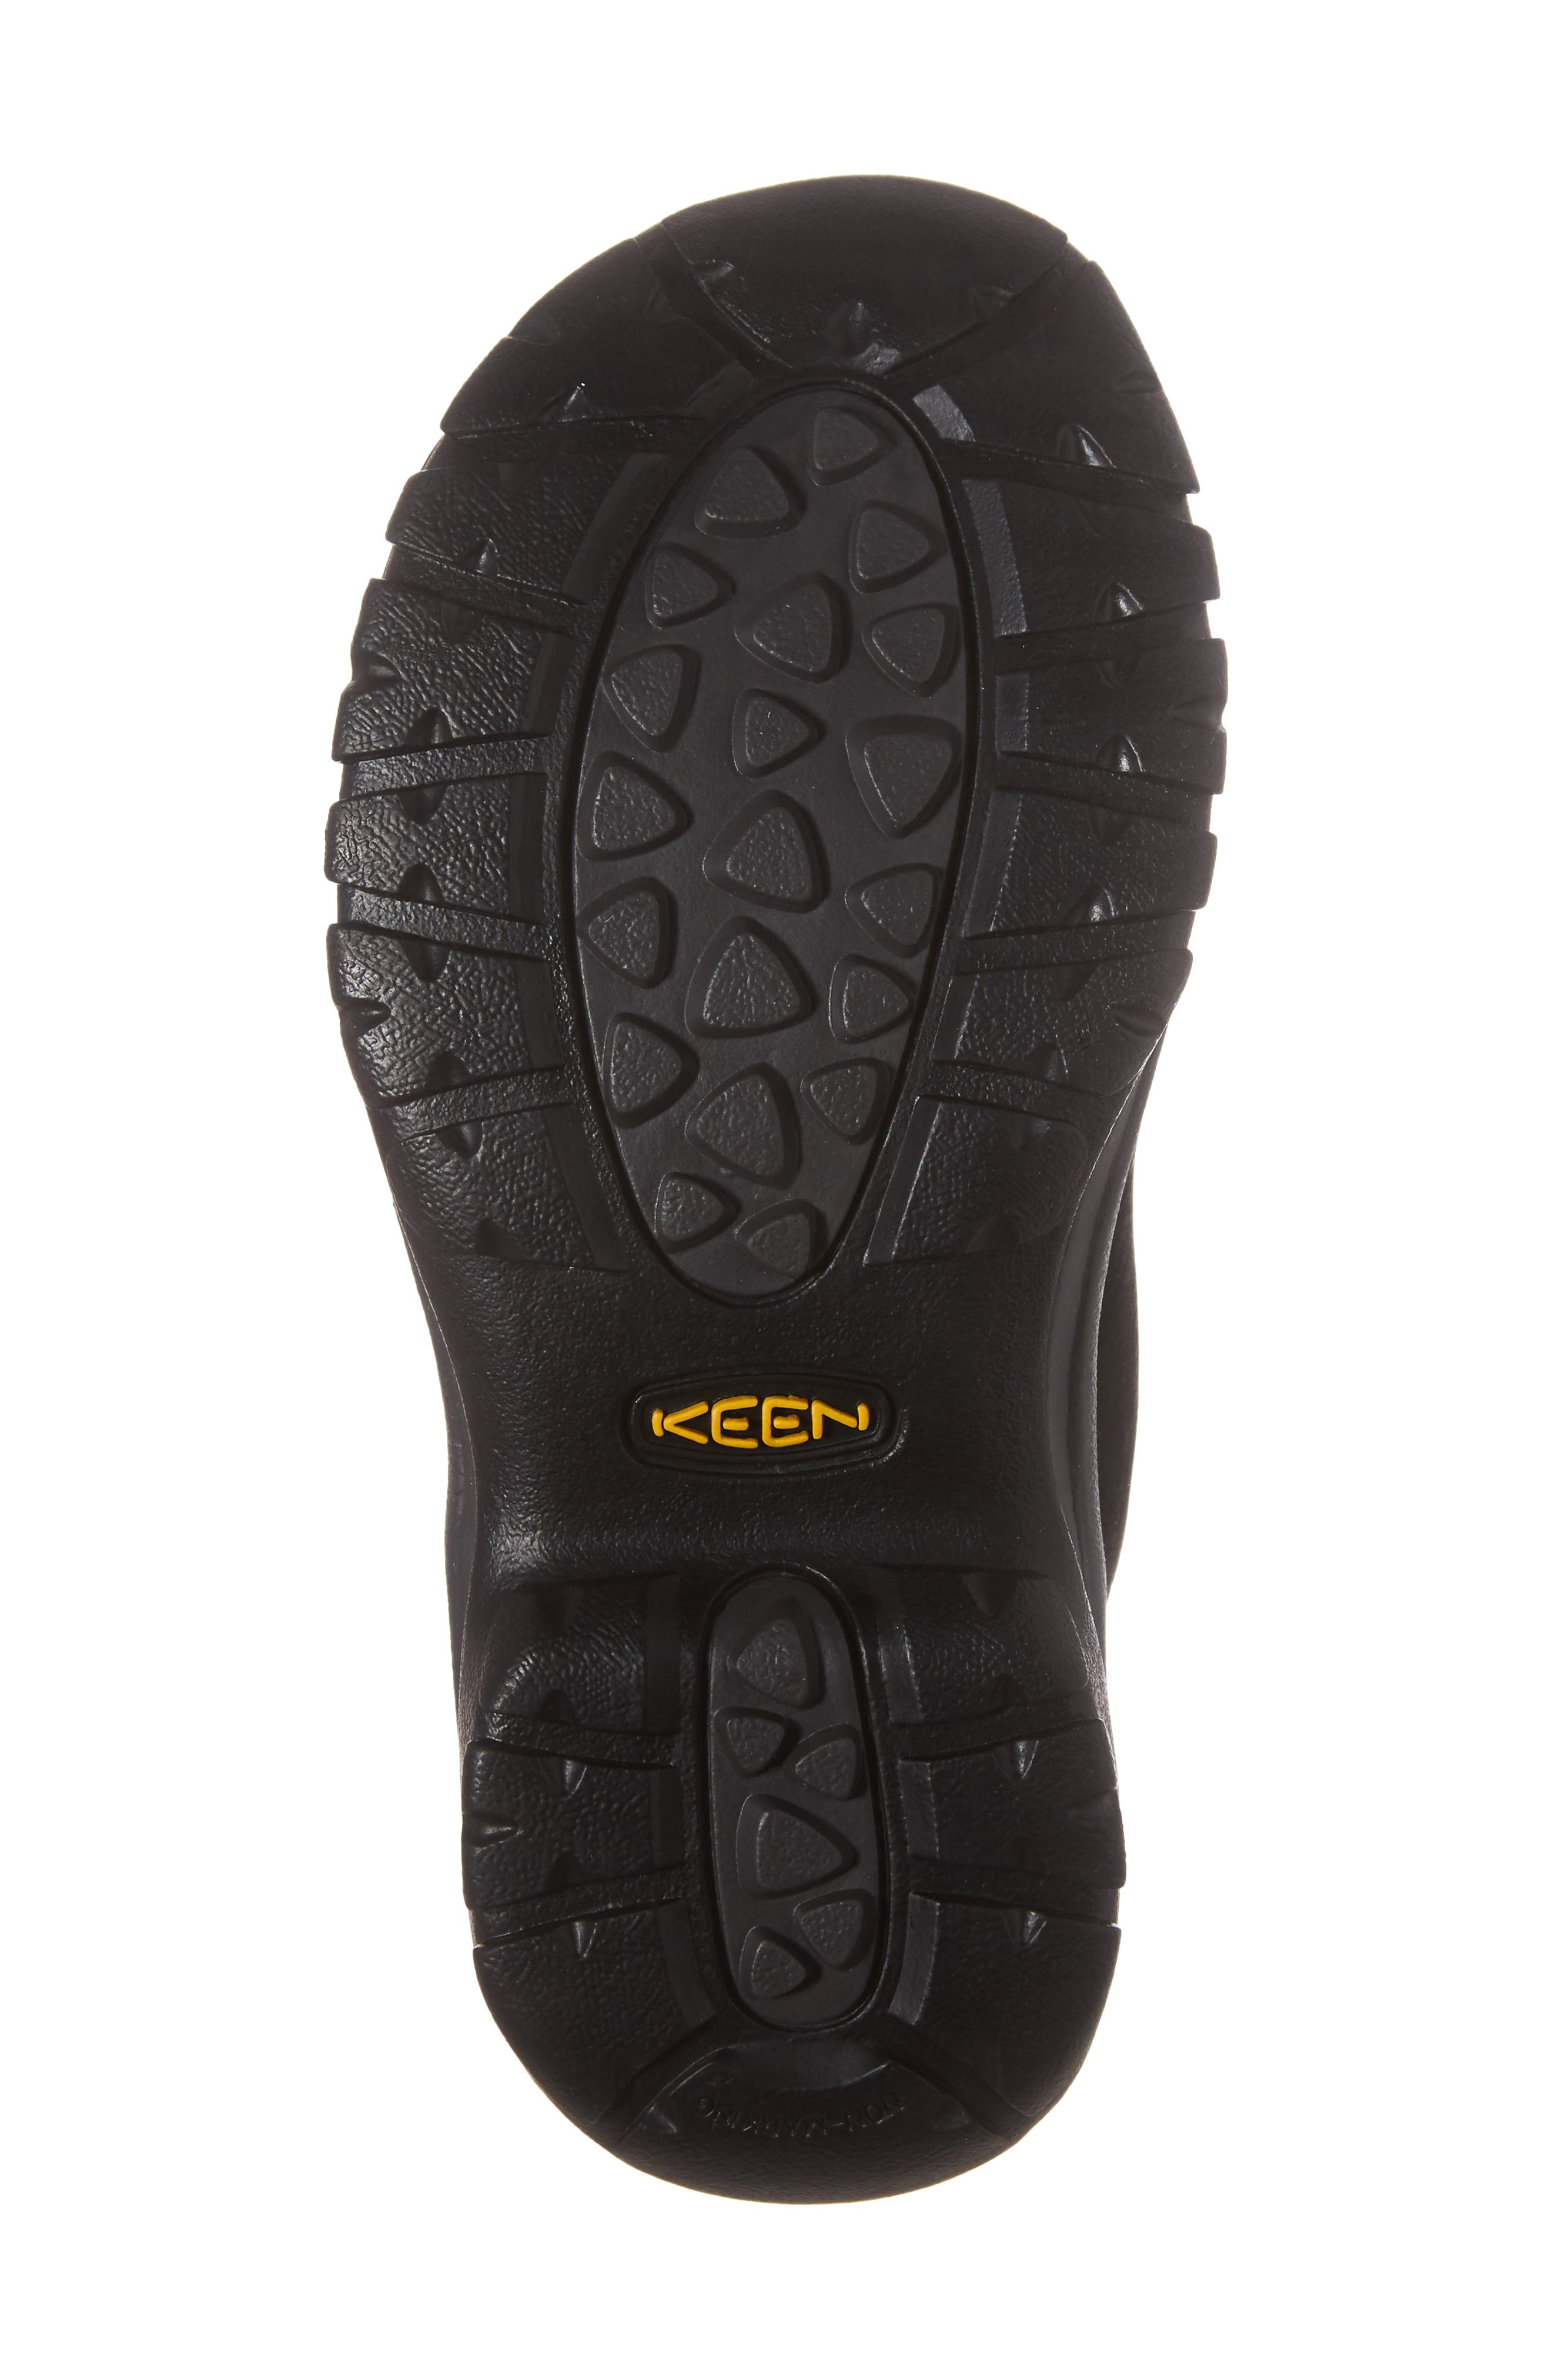 Kaci Waterproof Winter Boot,                             Alternate thumbnail 6, color,                             Black/ Magnet Leather